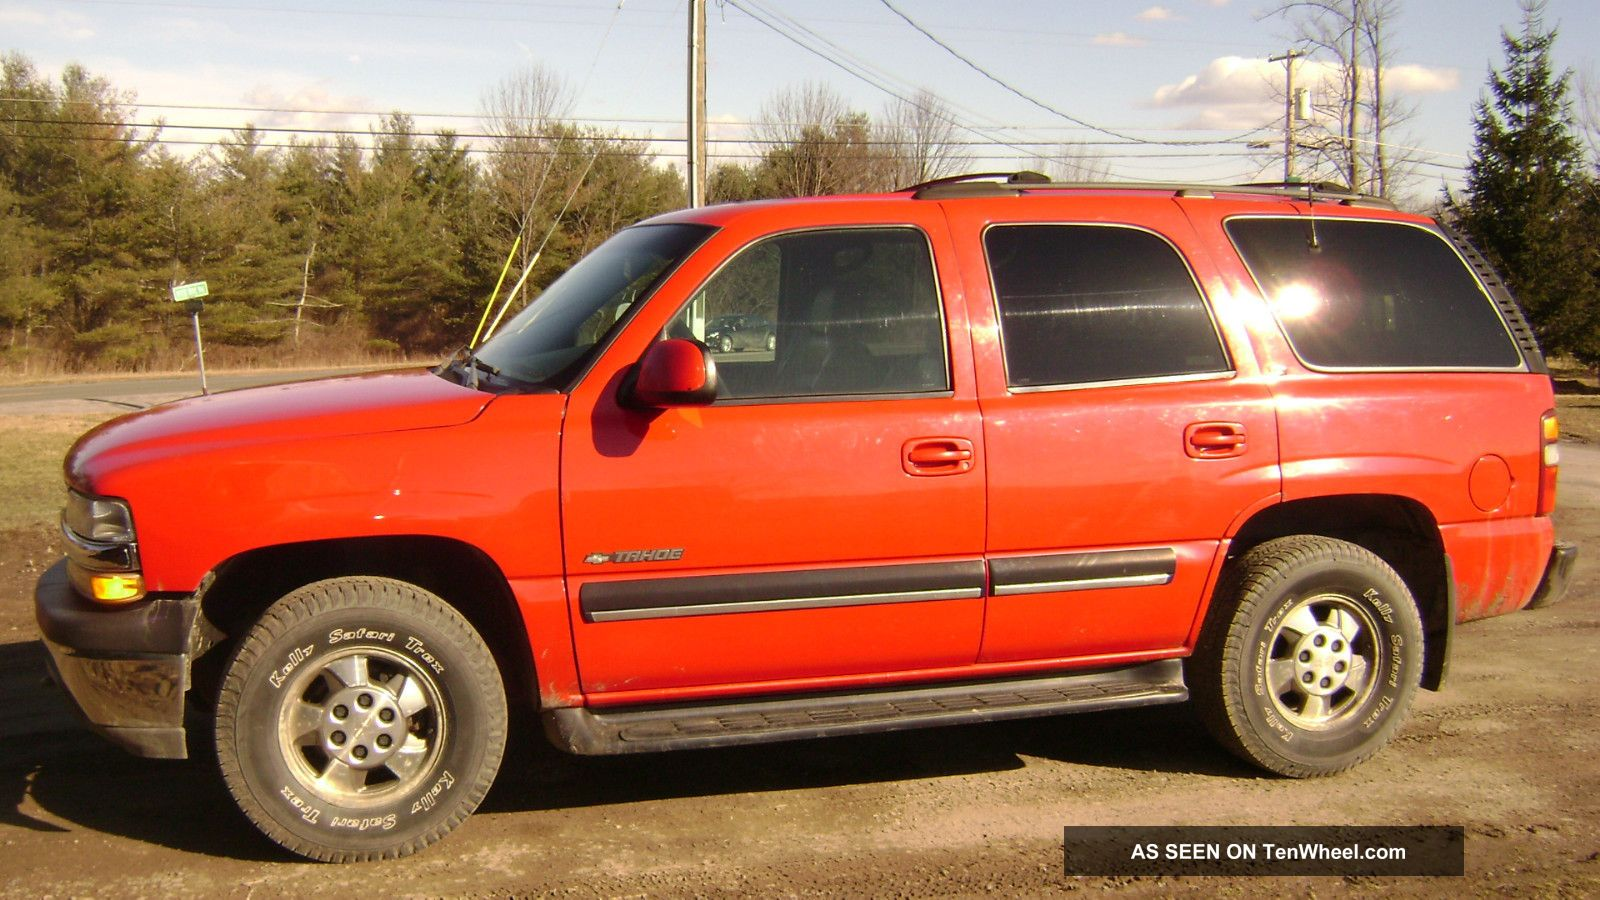 2001 chevy chevrolet tahoe 4x4 red suv suburban ready to go for 2001 chevy tahoe window motor